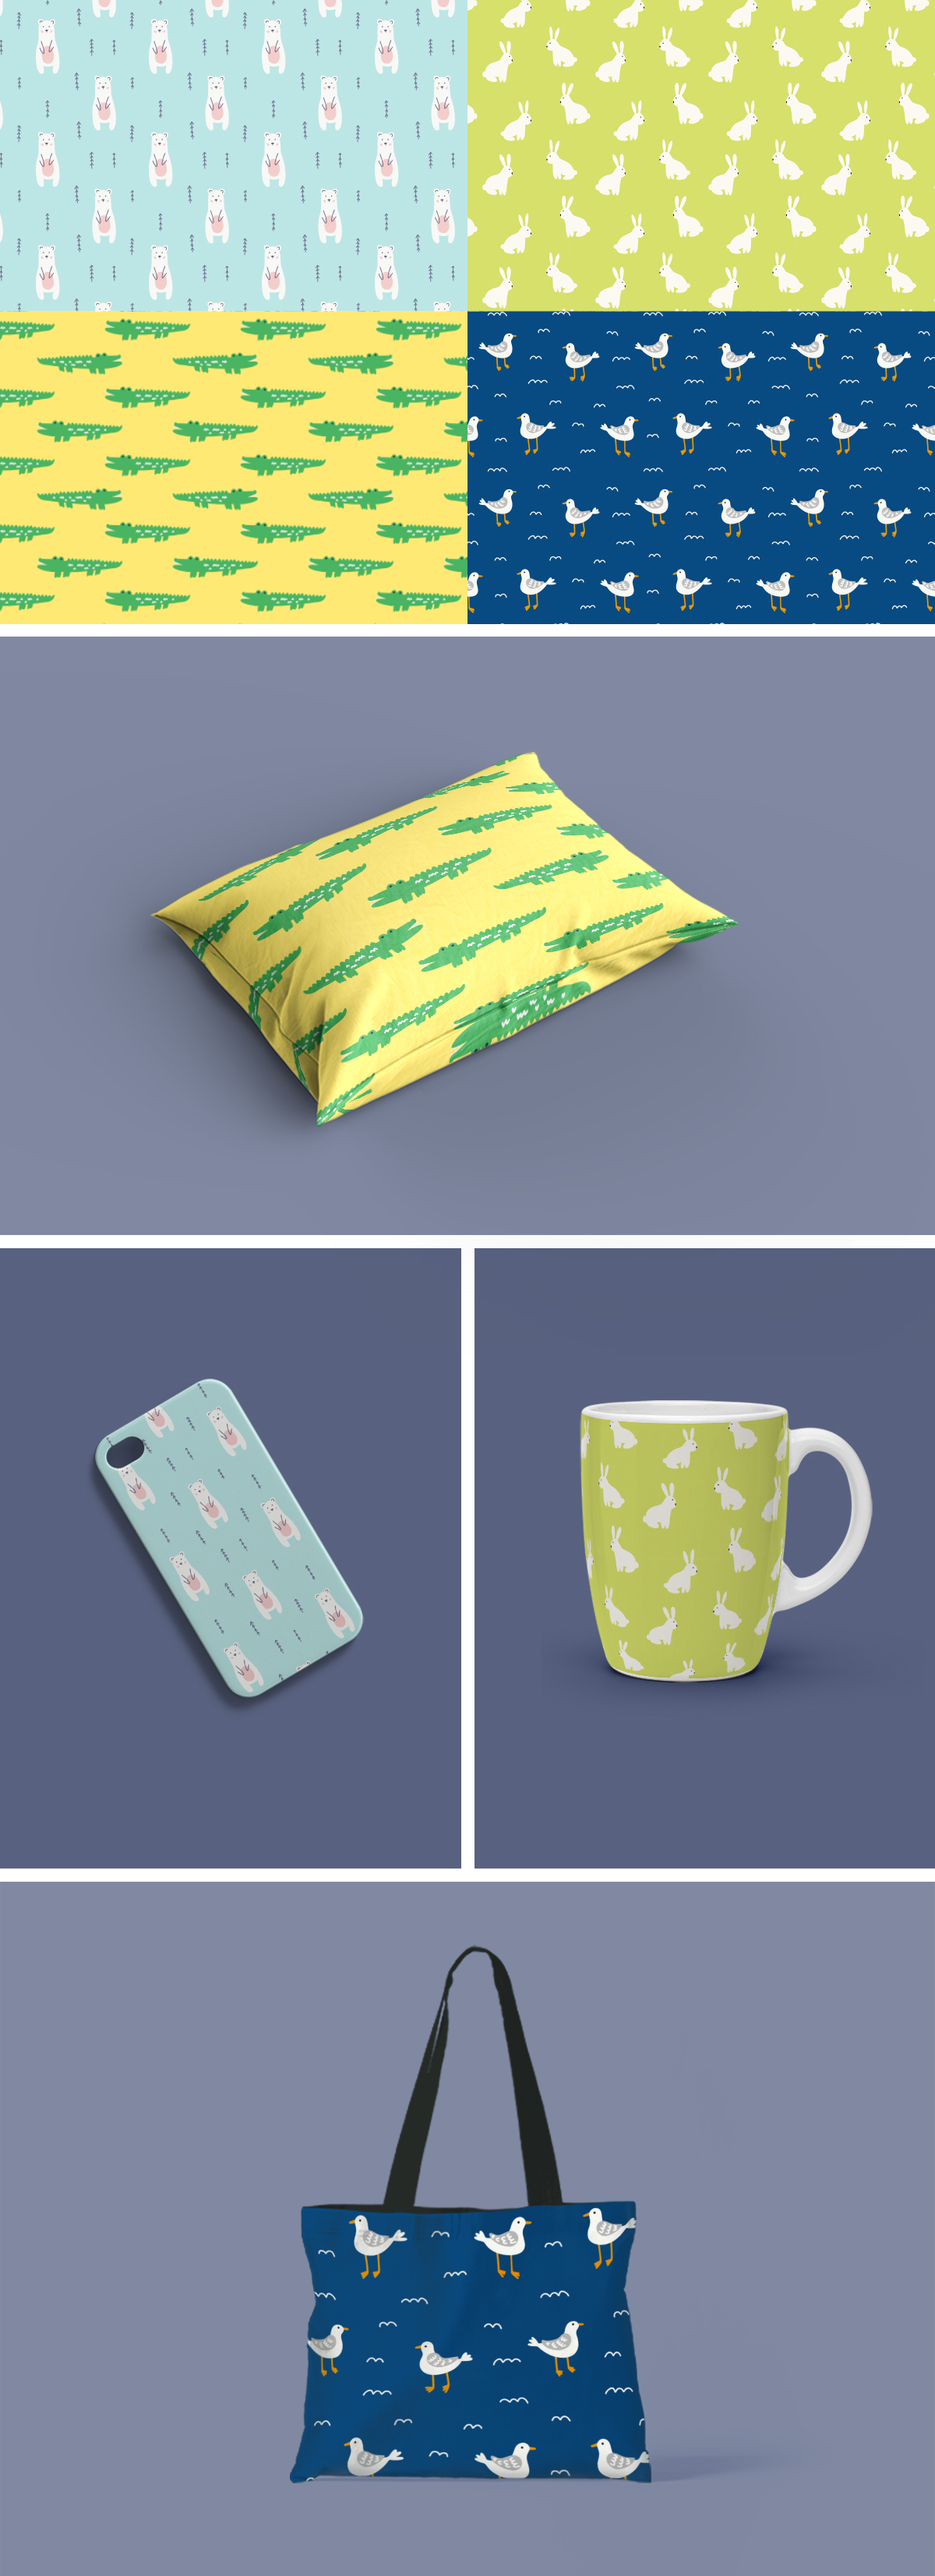 Free vector patterns pack